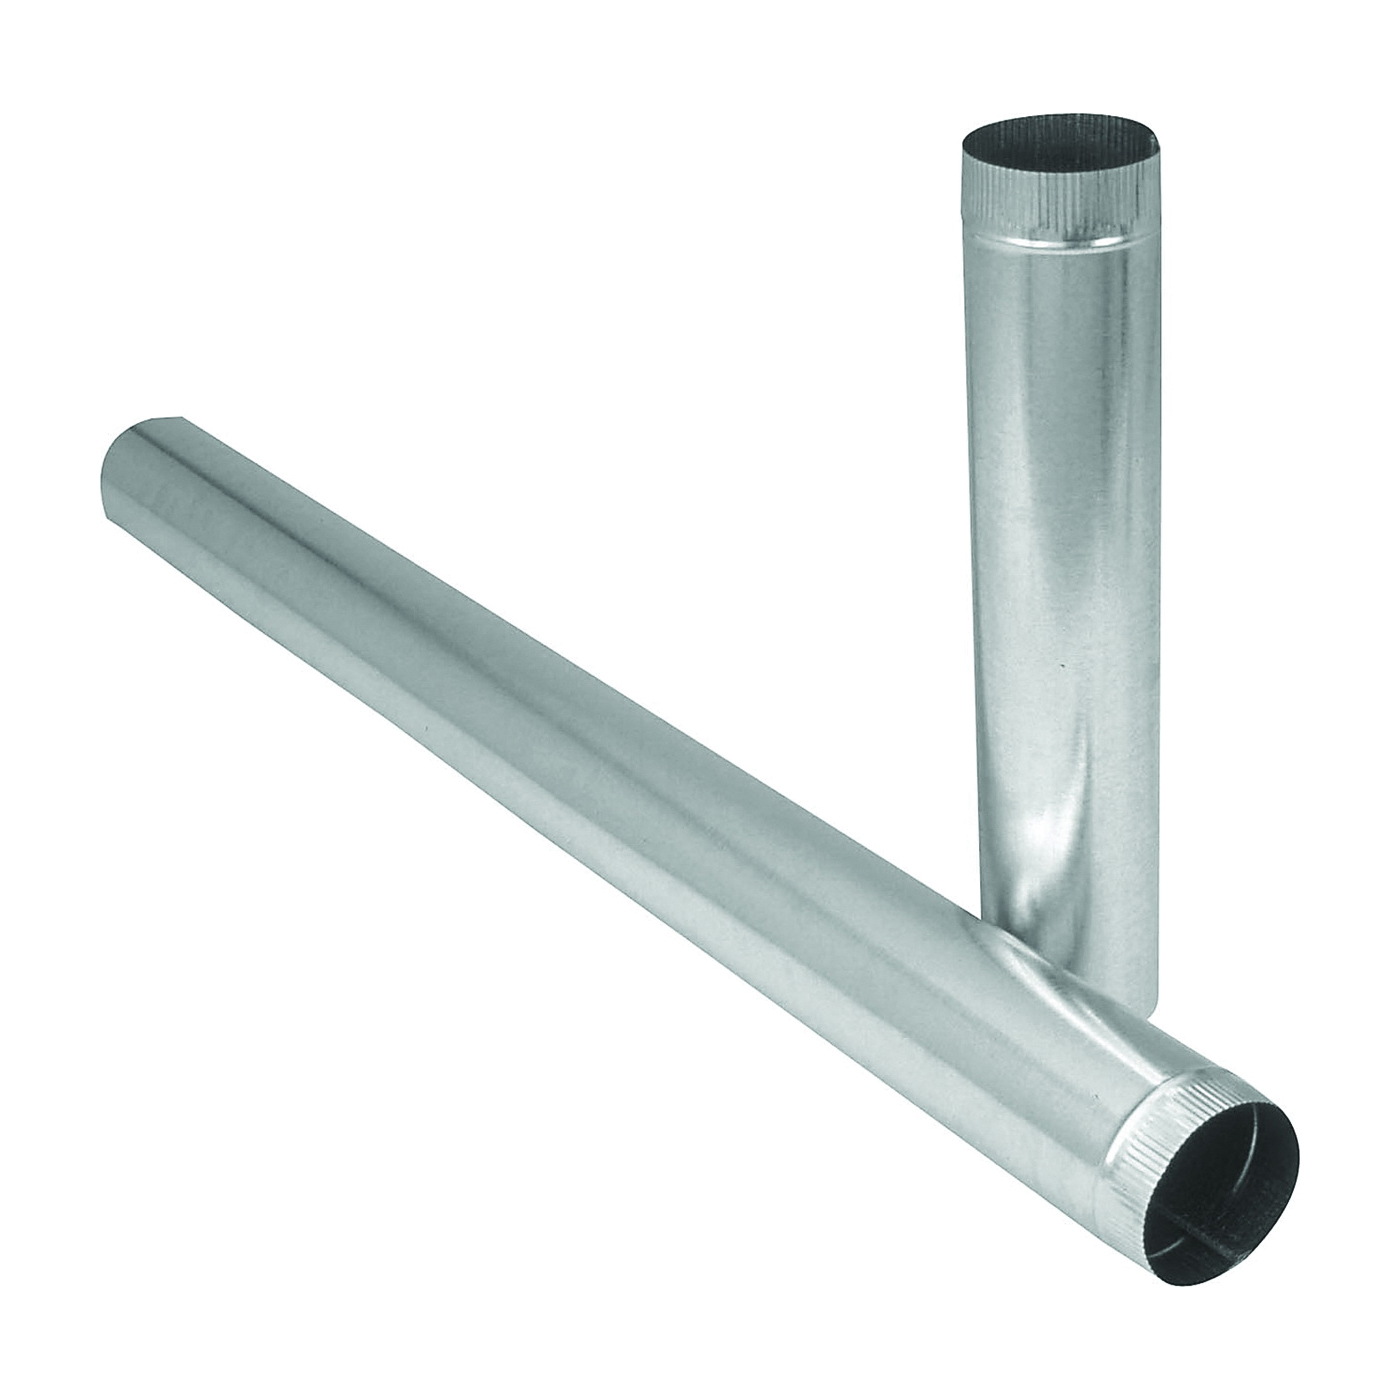 Picture of Imperial GV1812 Duct Pipe, 8 in Dia, 12 in L, 26 Gauge, Galvanized Steel, Galvanized